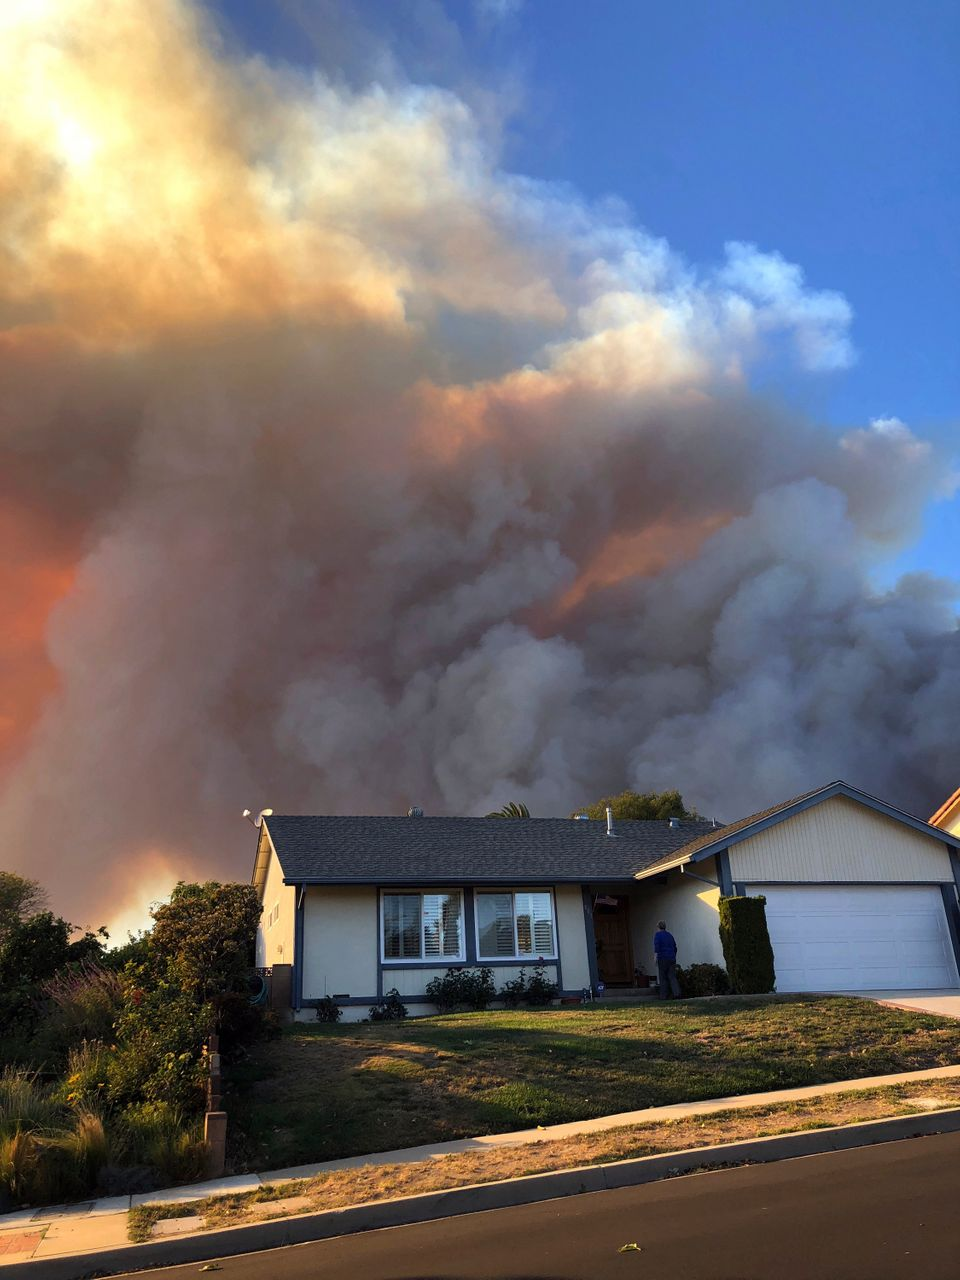 Plumes of smoke loom in the sky several miles away, seen behind a home in Thousand Oaks,